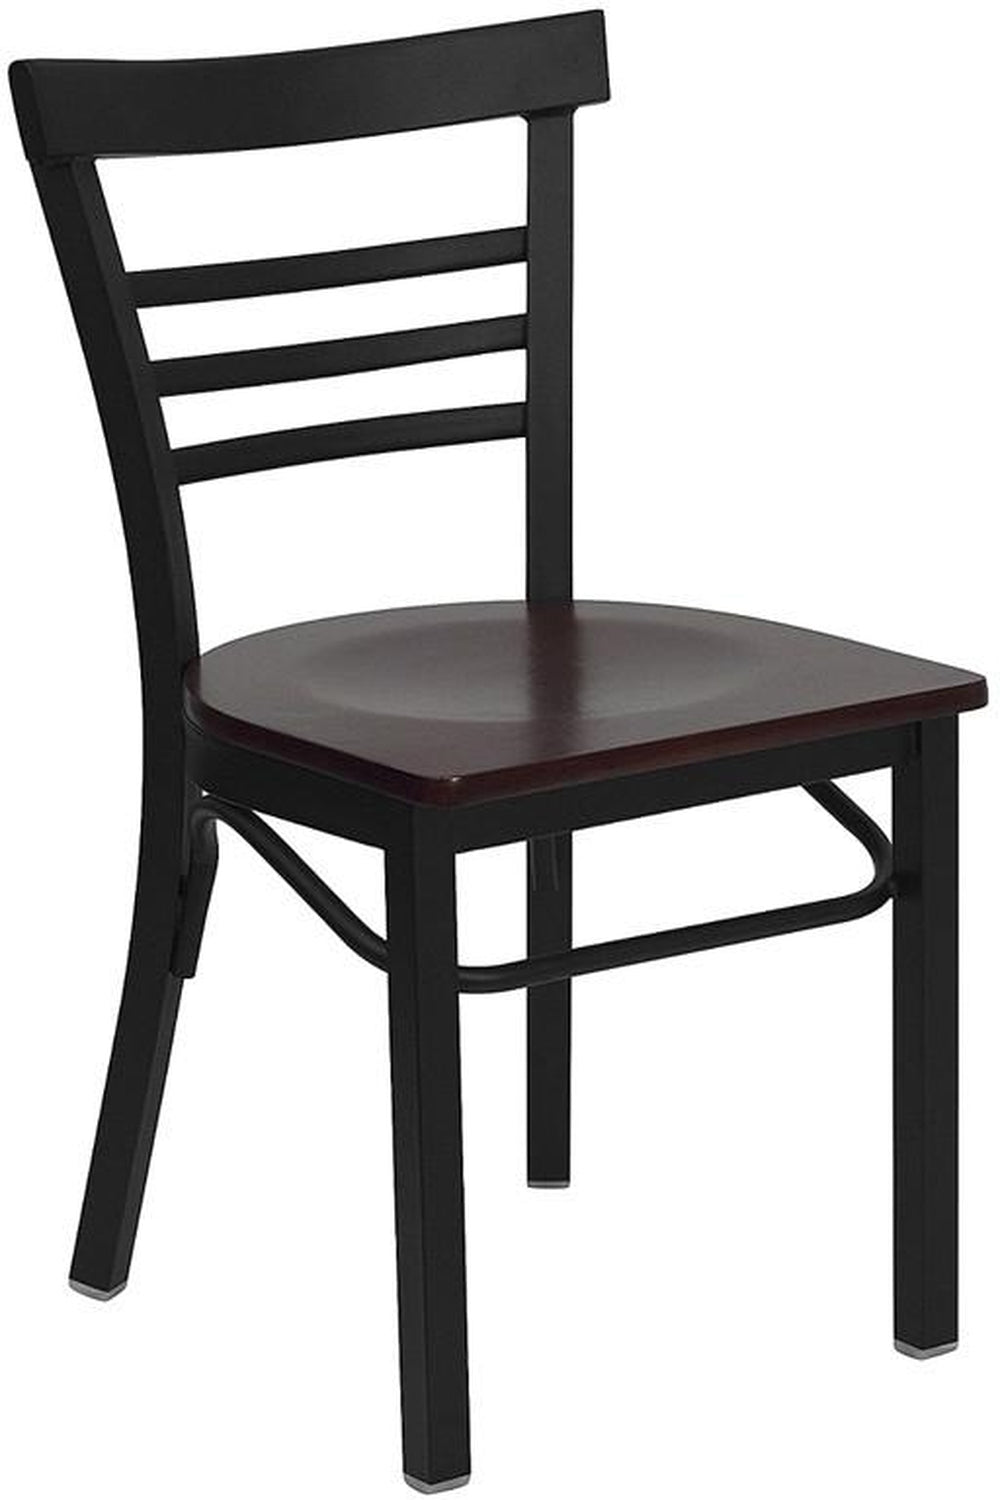 HERCULES SERIES LADDER BACK BLACK METAL RESTAURANT CHAIR WITH MAHOGANY WOOD SEAT  sc 1 st  Qolture & HERCULES SERIES LADDER BACK BLACK METAL RESTAURANT CHAIR WITH ...